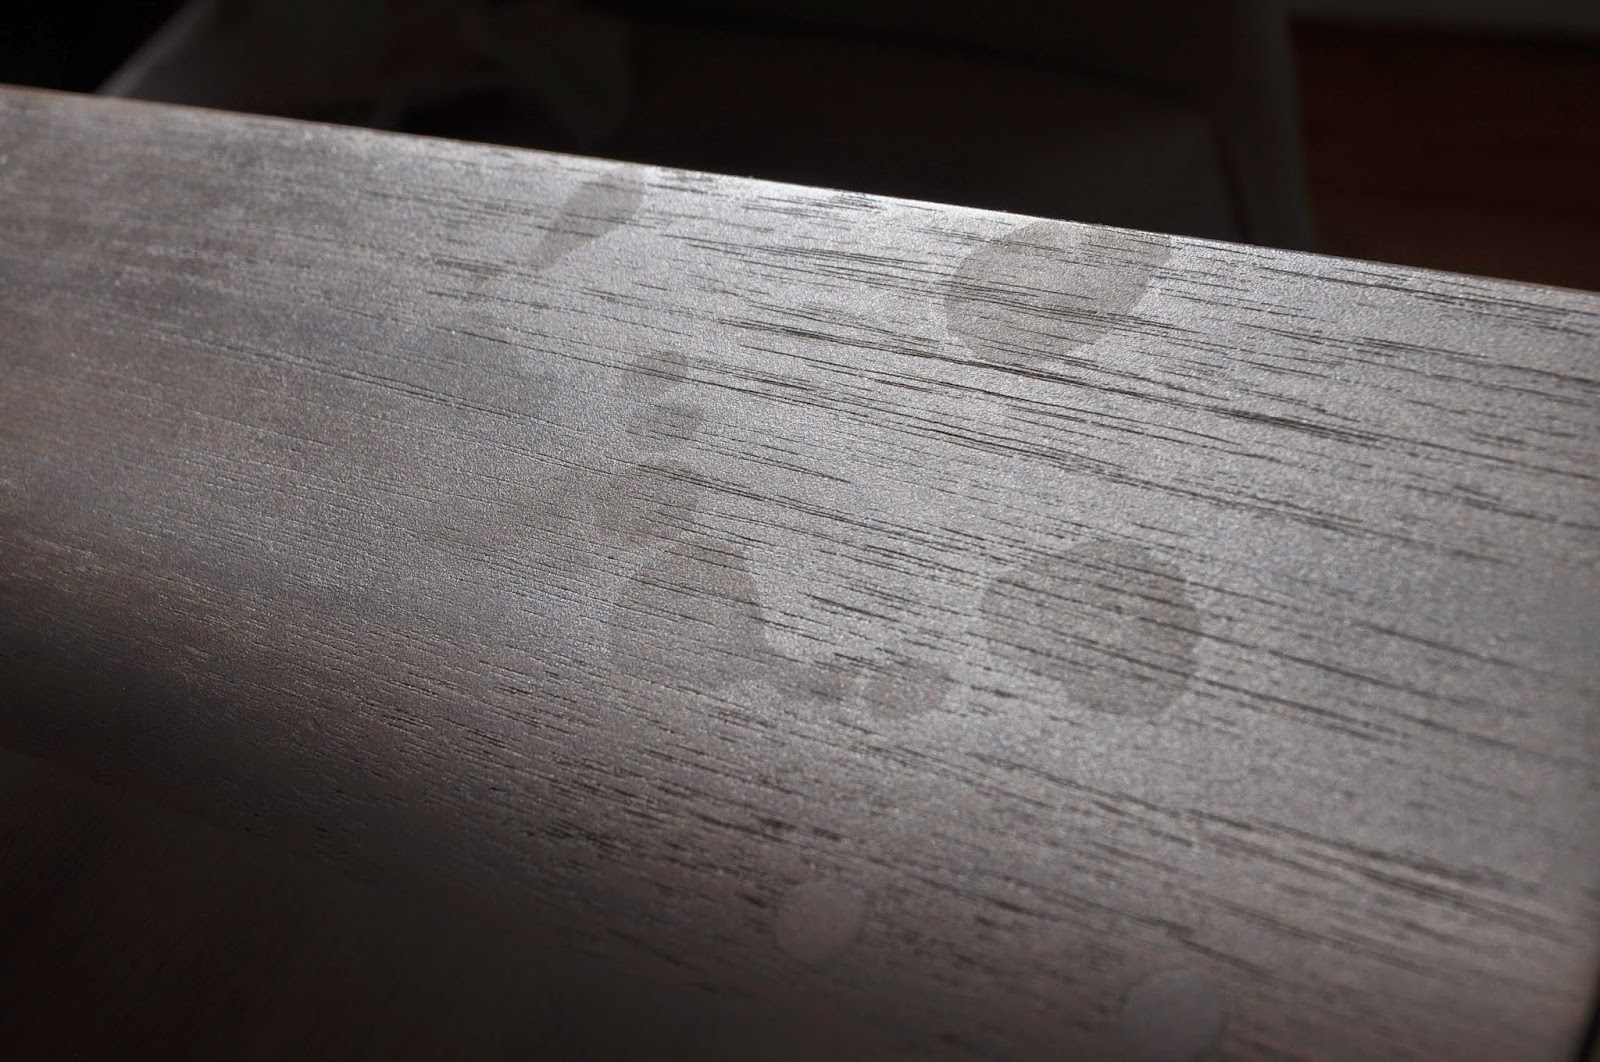 Non Toxic Munchkin Removing Water Stains From Wood Furniture. How To Remove Black Water Stains From Wood Furniture   Best